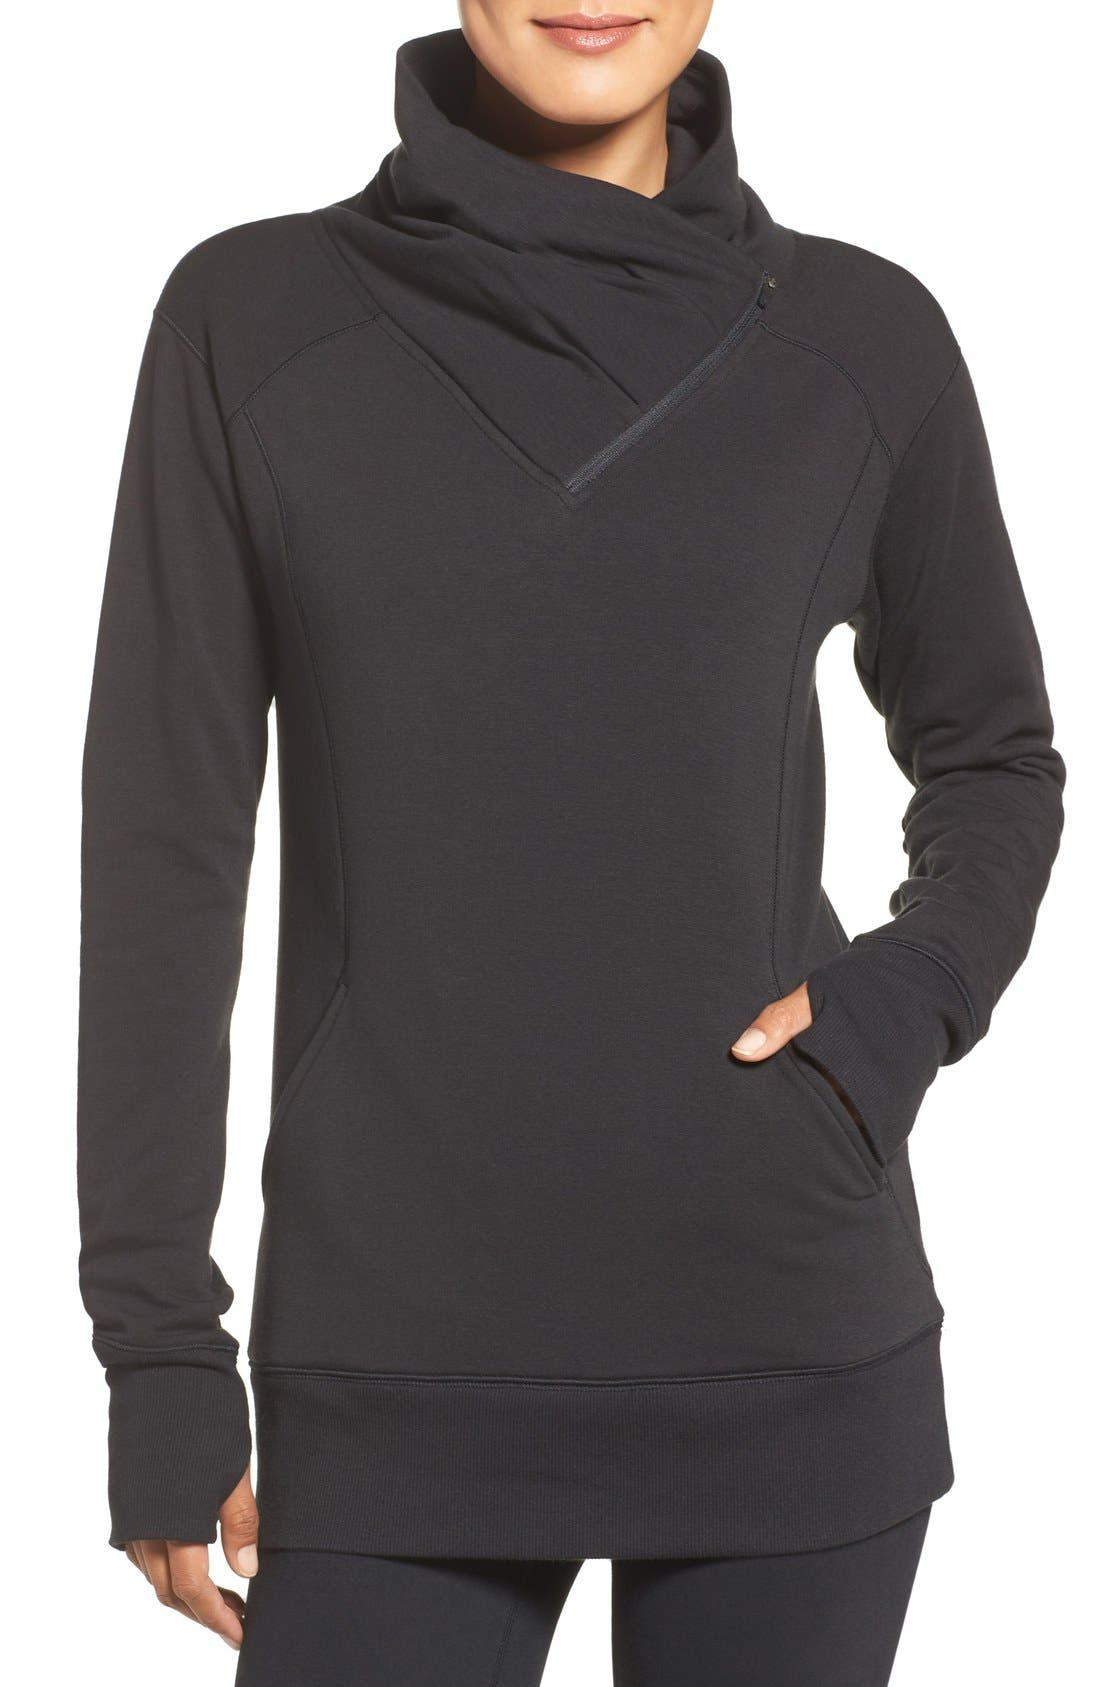 Women's Black Sweatshirts, Hoodies & Fleece | Nordstrom